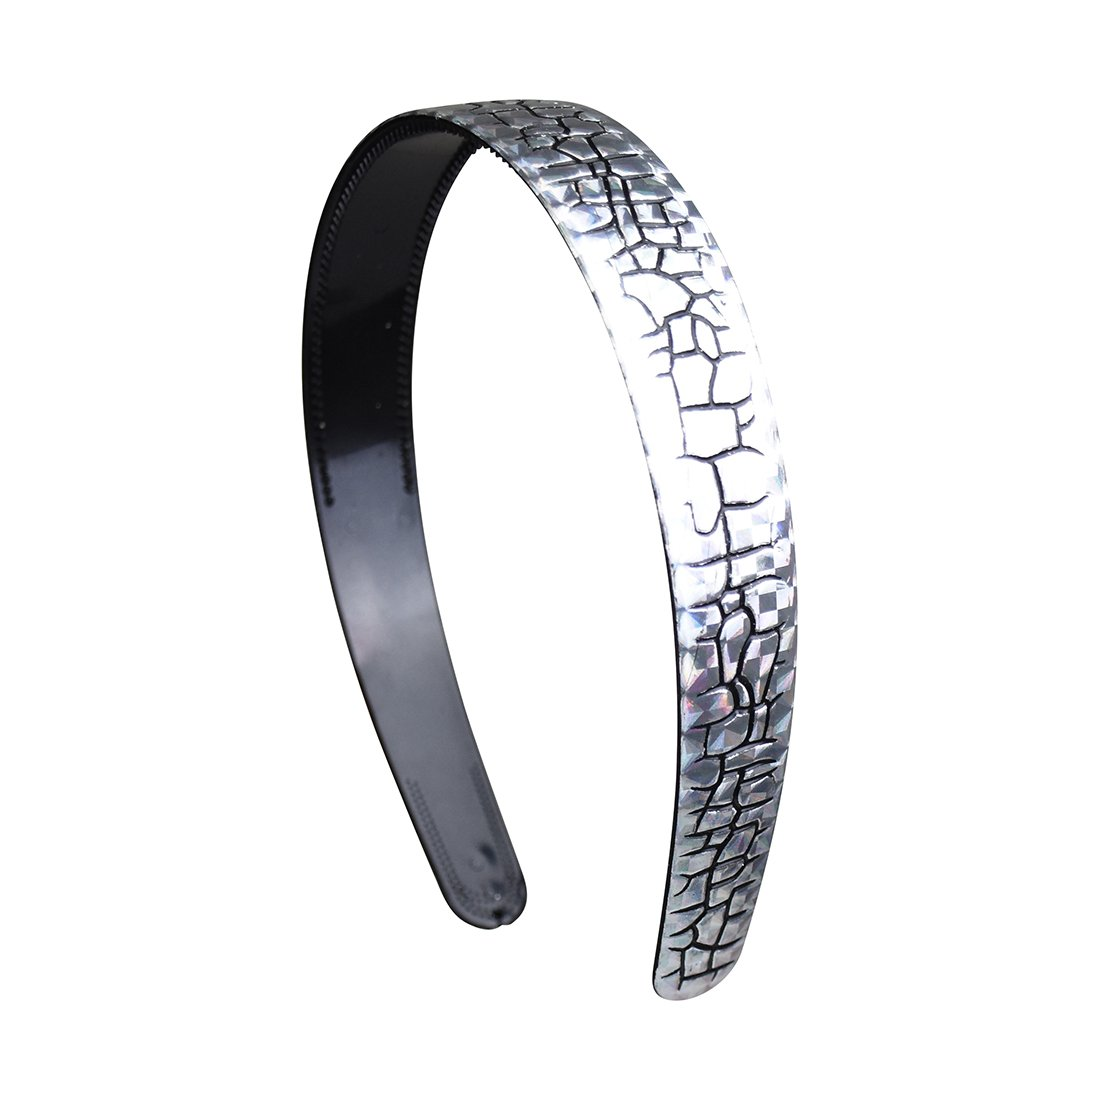 1 Inch Silver Crackle Design Headband - Black